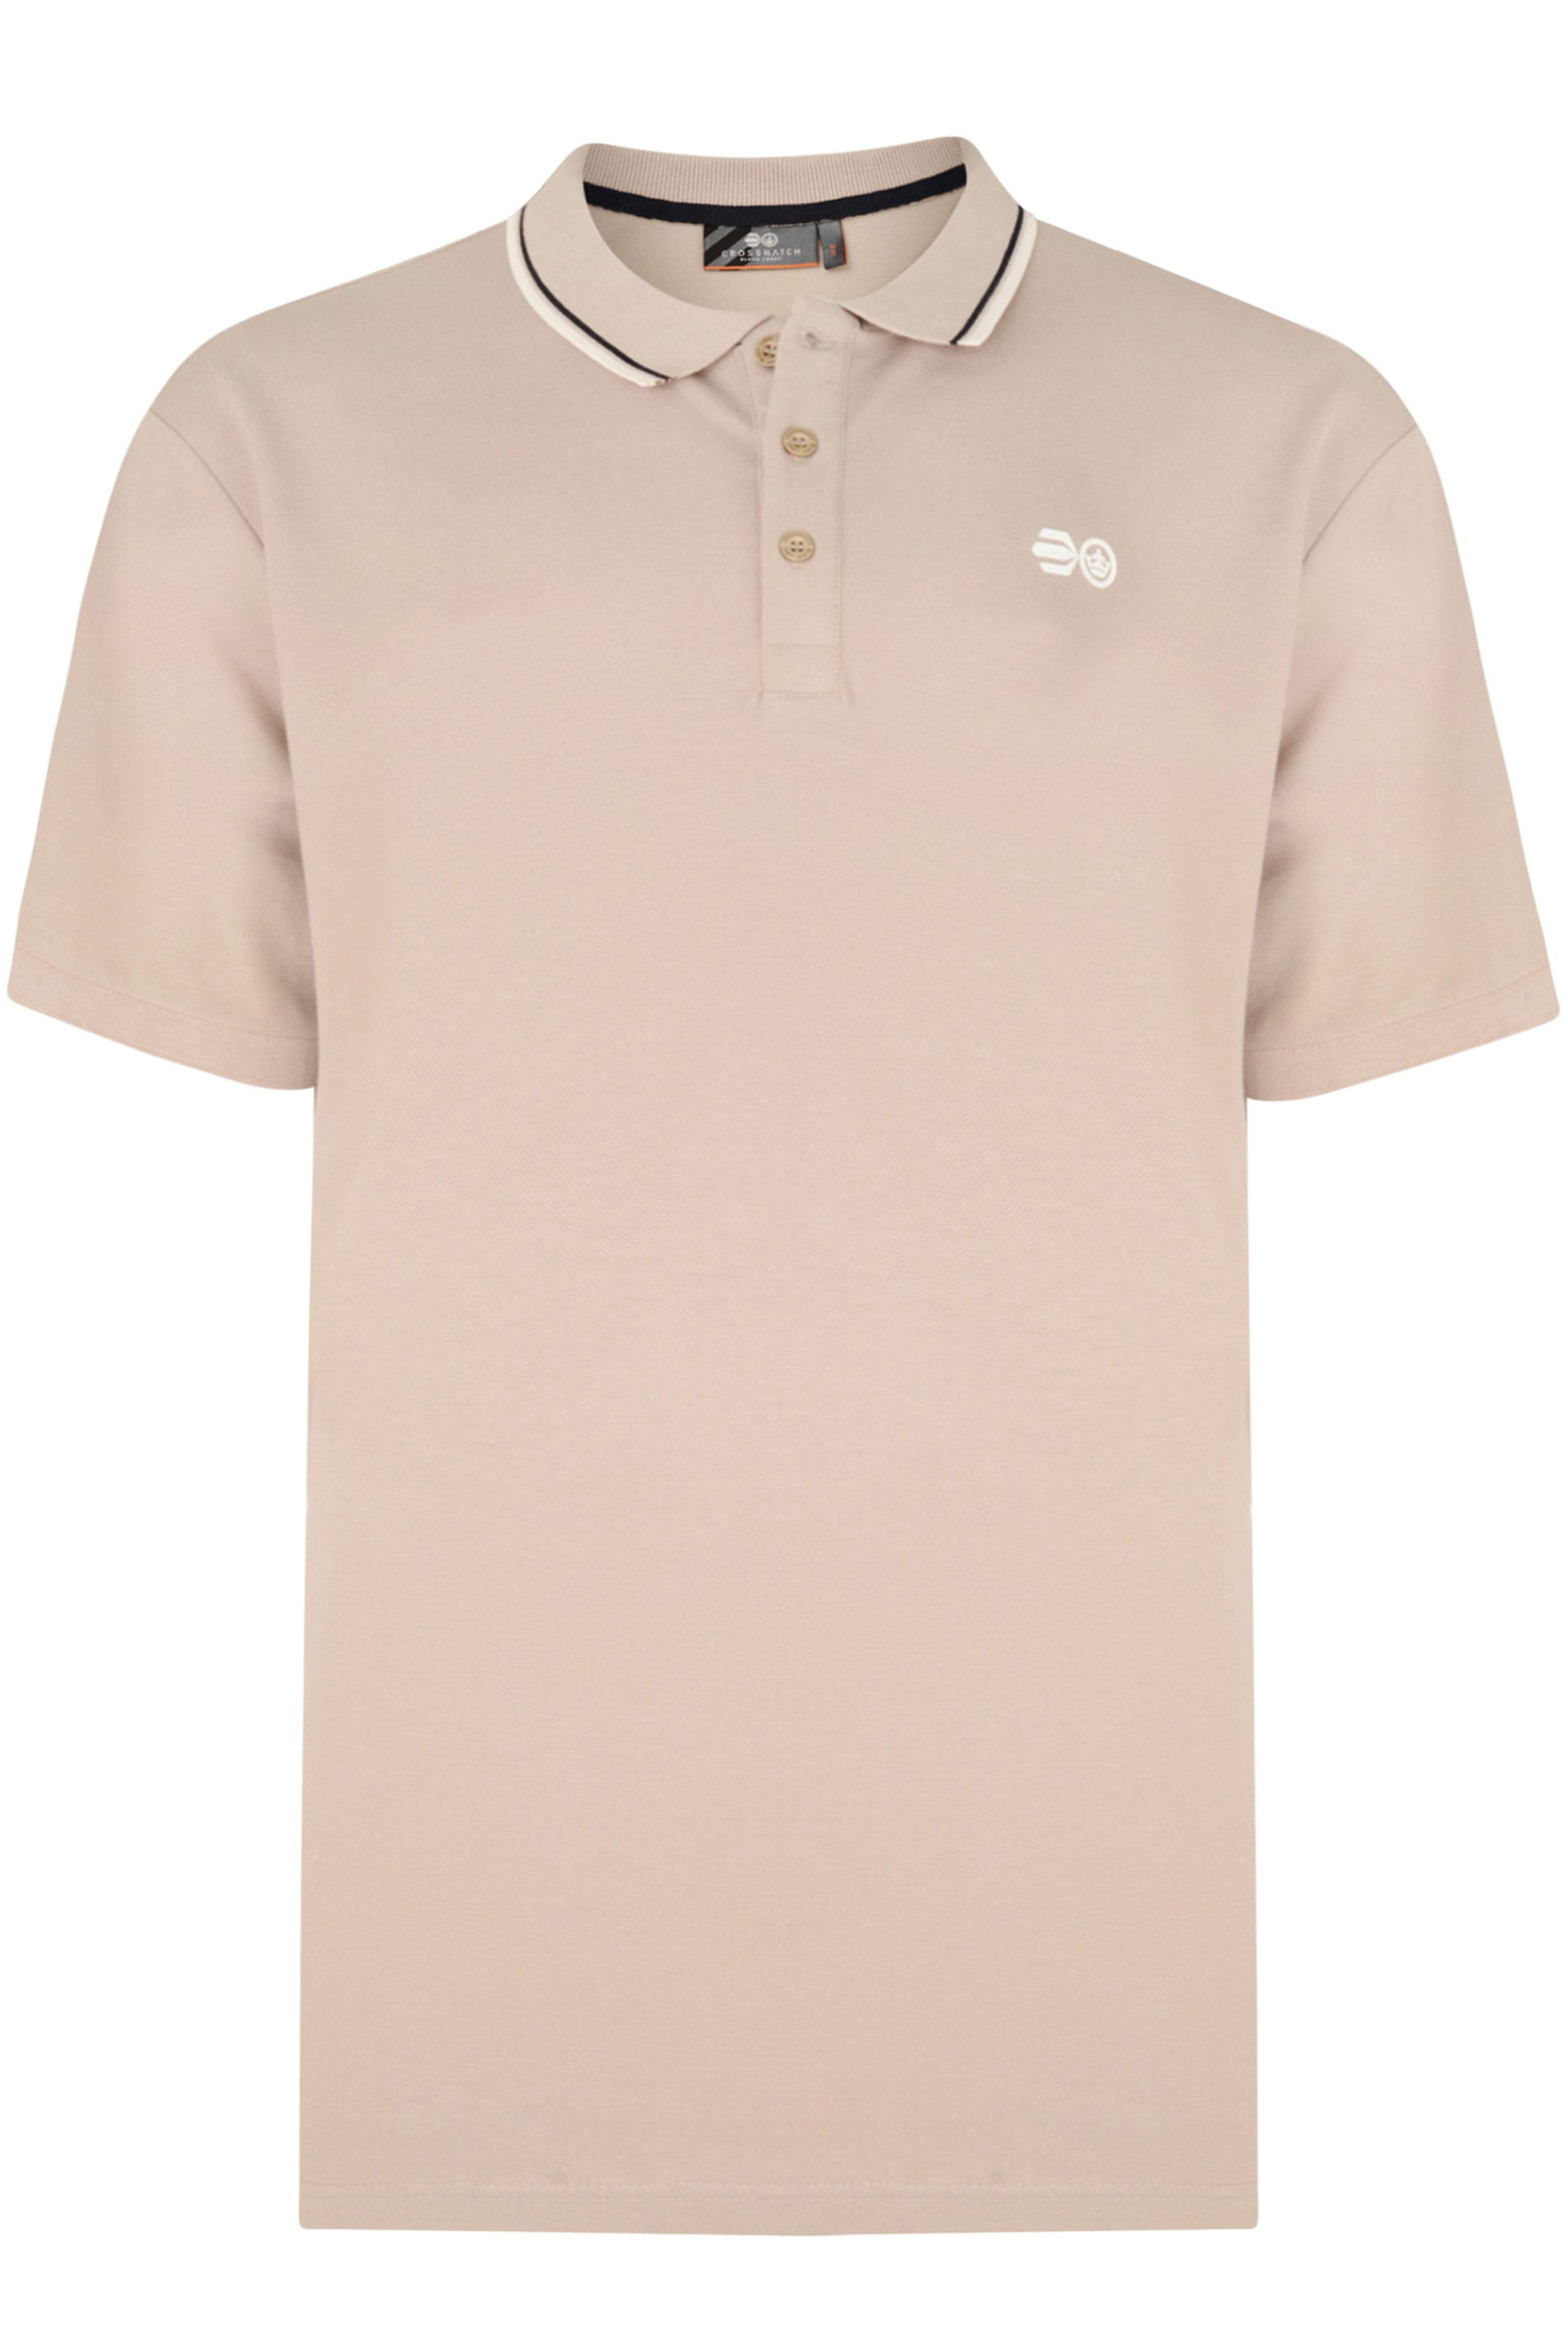 Crosshatch Stone Tipped Polo Shirt